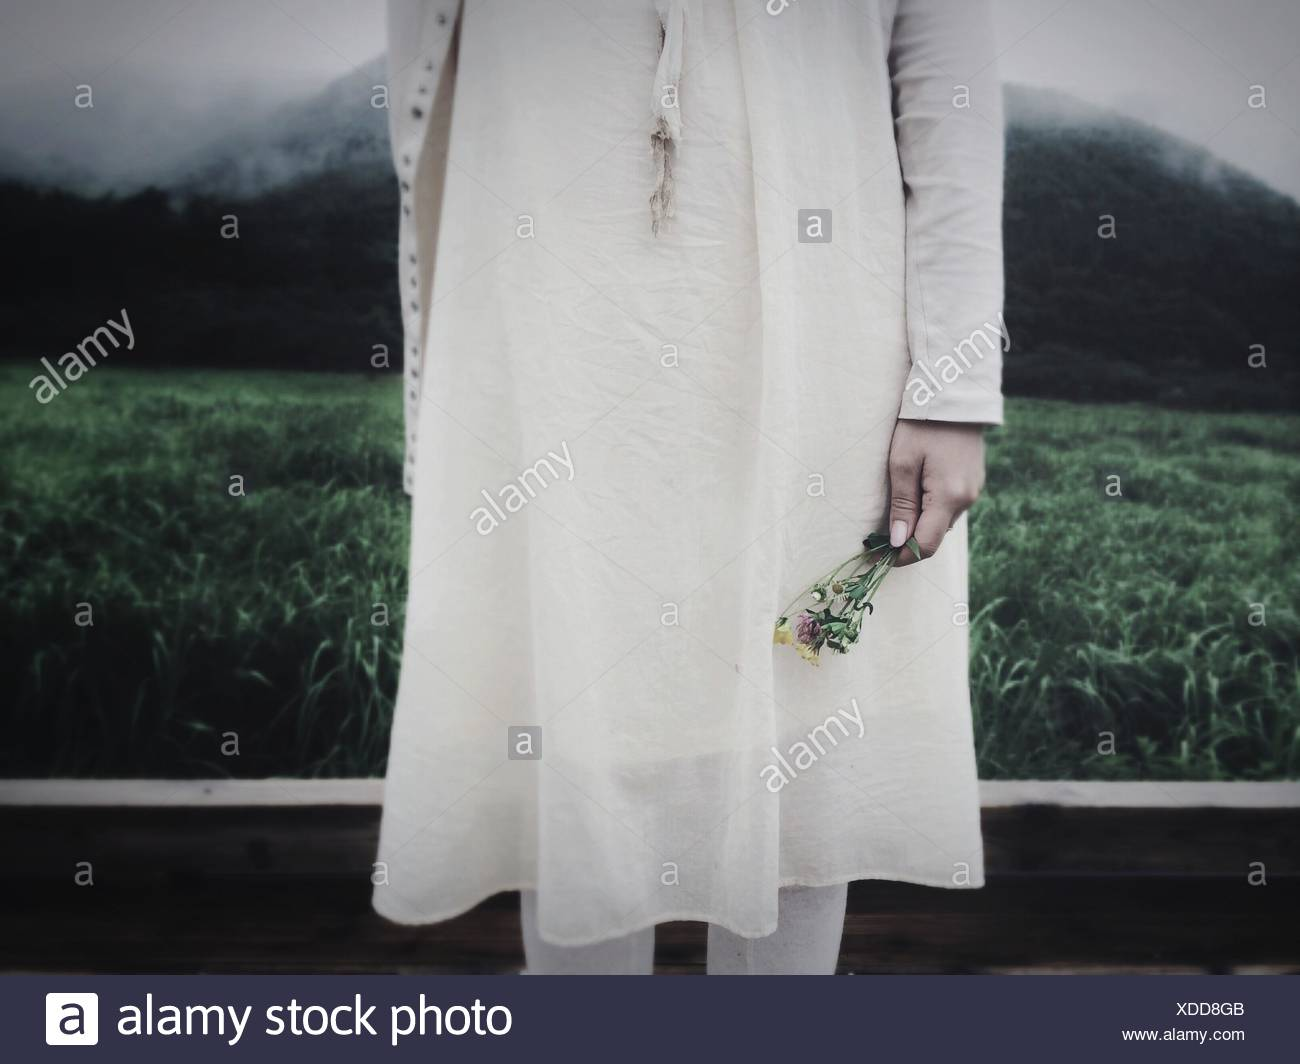 Close-Up Mid Section Of Woman Holding Flowers - Stock Image